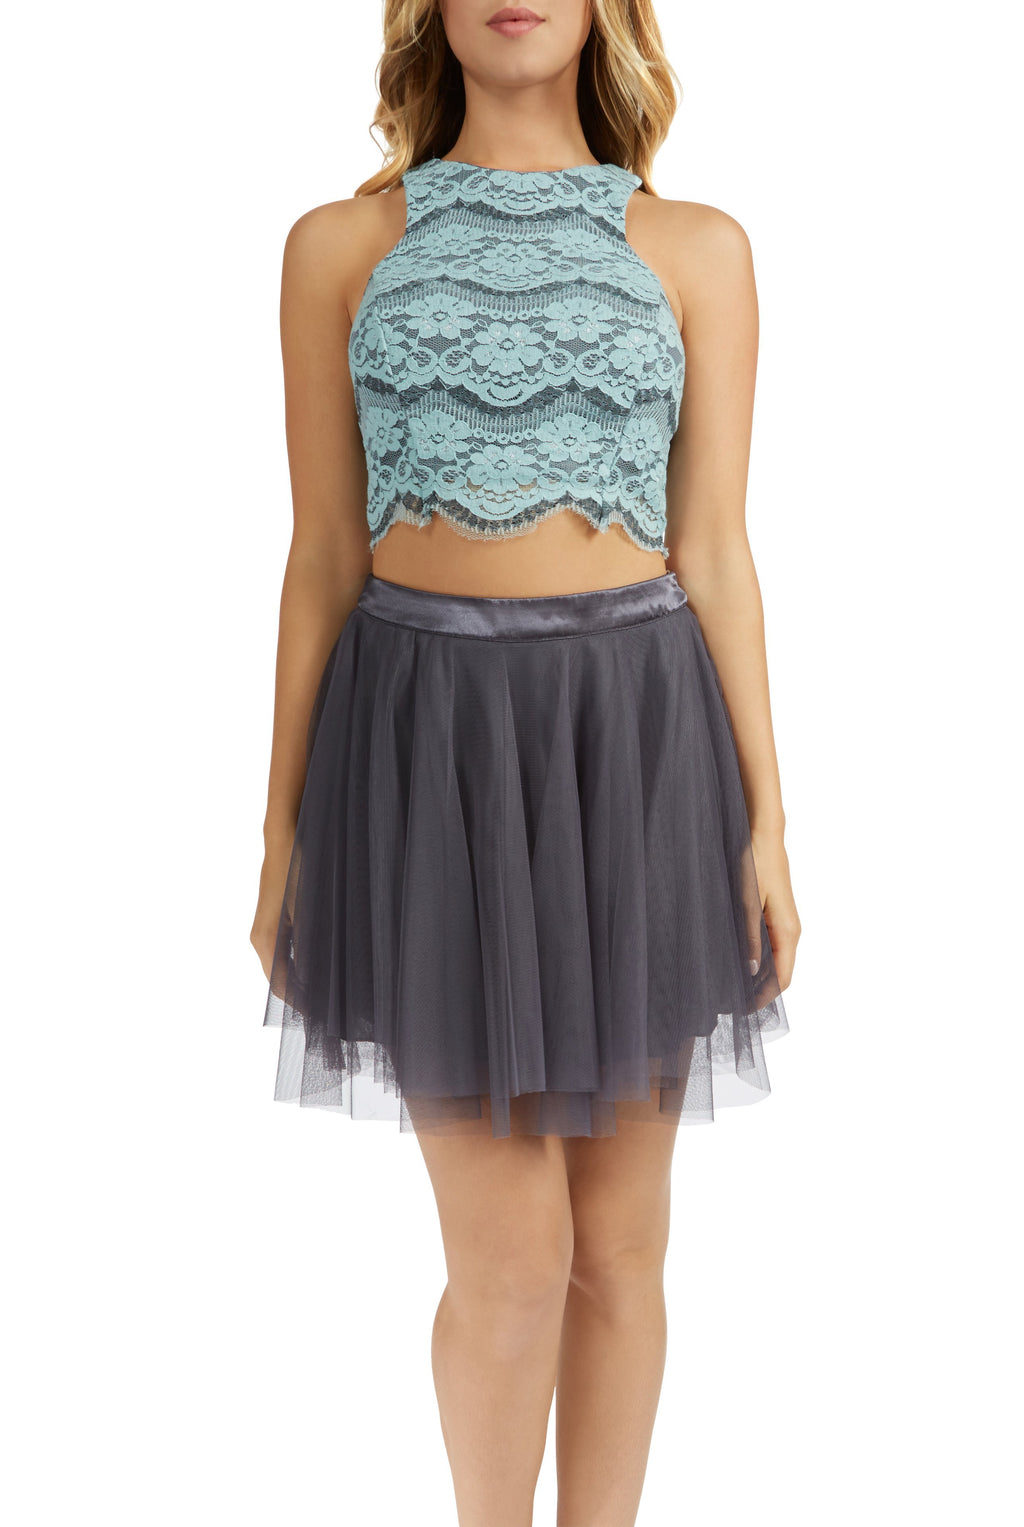 Teeze Me | Halter Lace Top and Mesh Party Skirt Two-Piece Set | Sage/Charcoal